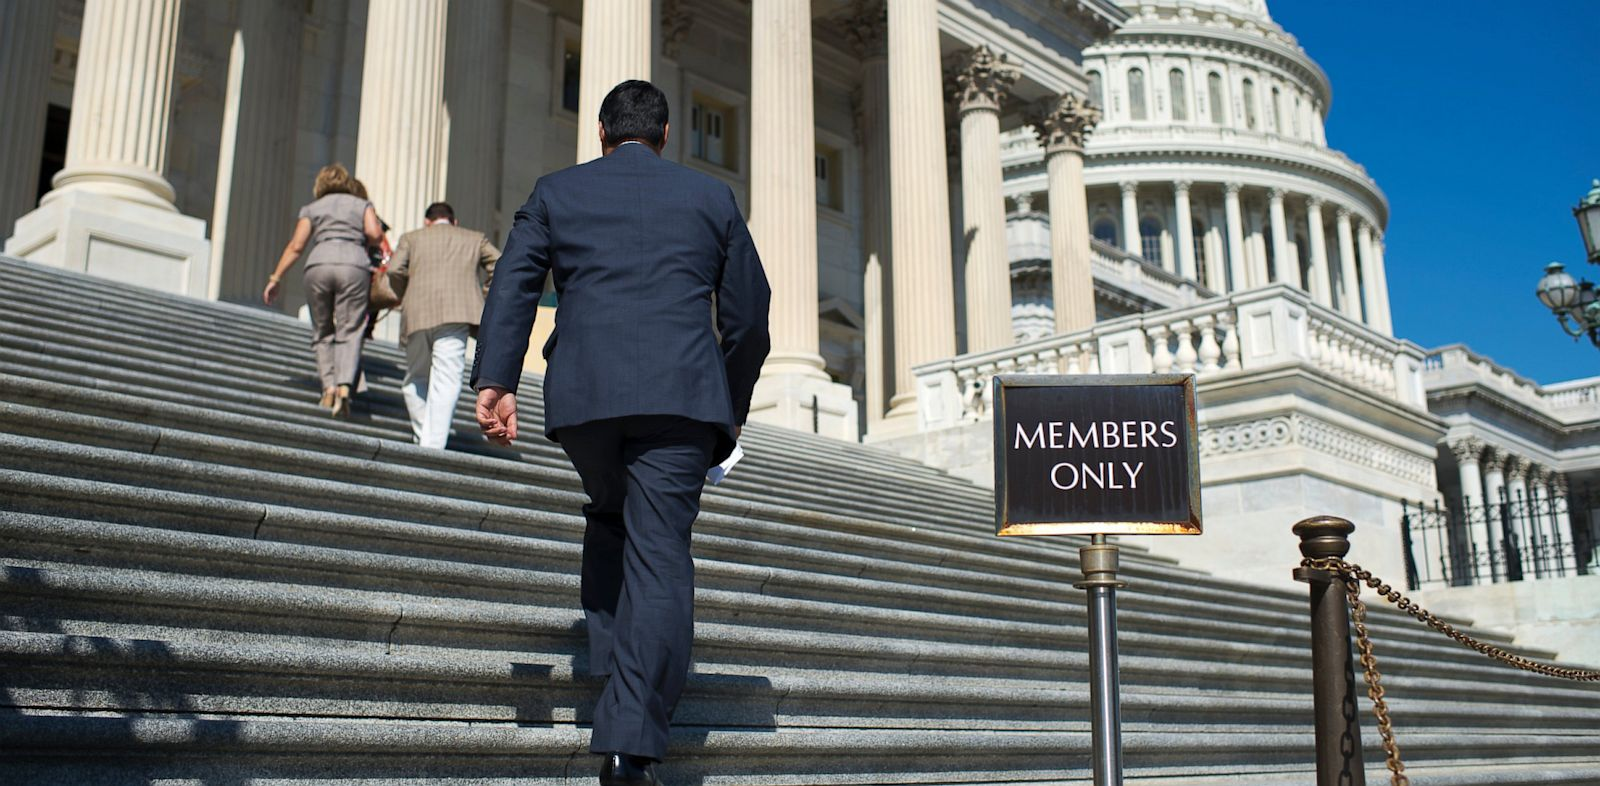 PHOTO: House representatives on Capitol steps